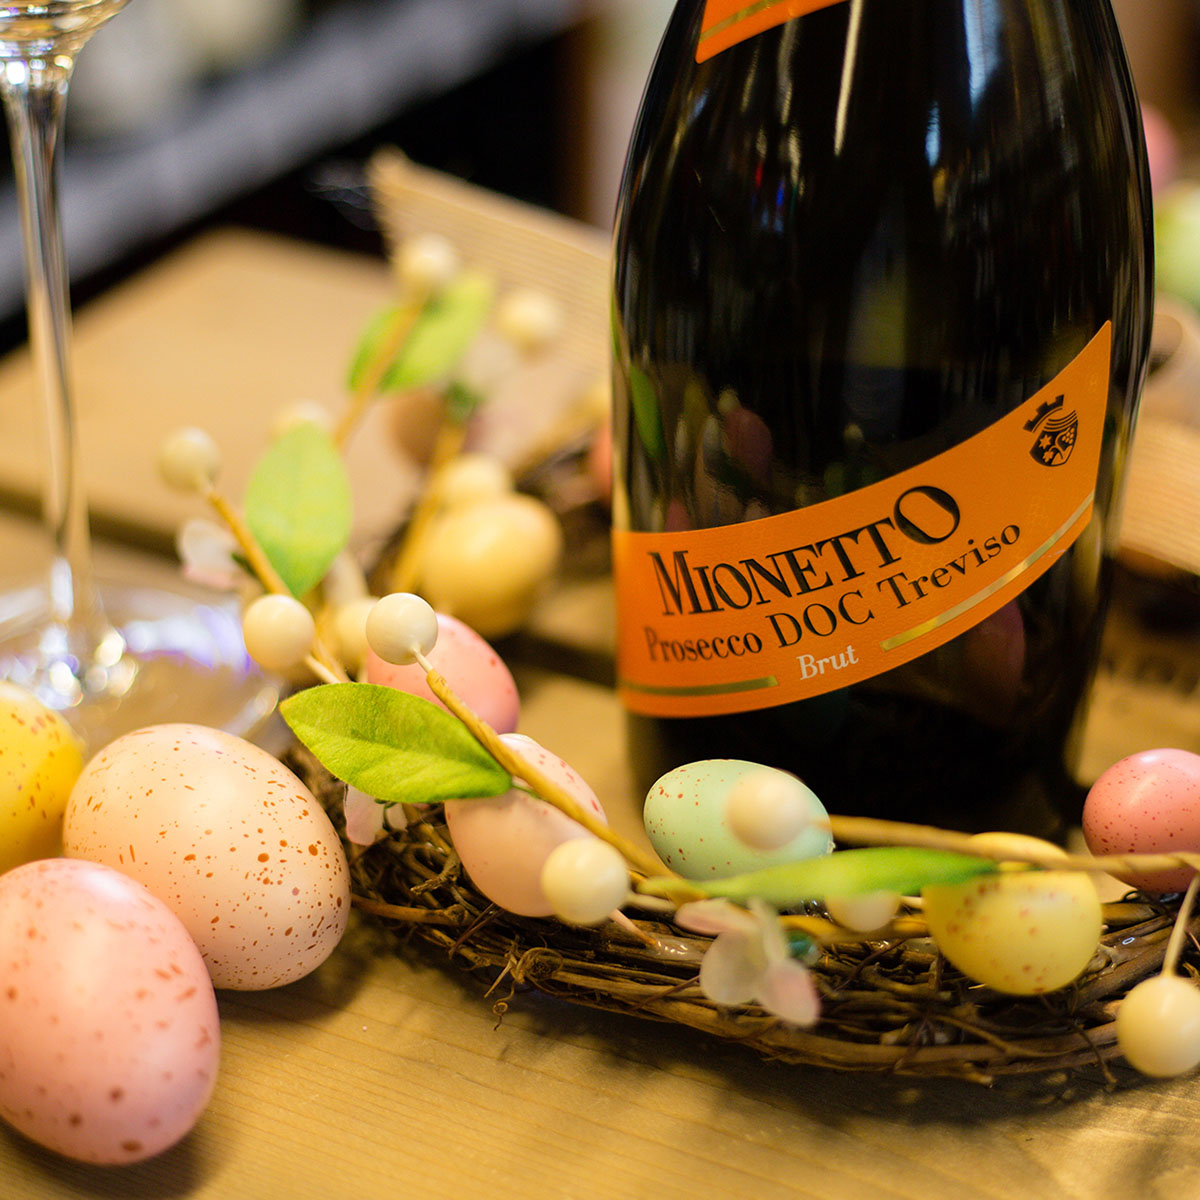 Mionetto Prosecco - Bubbles and brunch go hand in hand! Pair this lively and fruity treat with your hot-cross buns, deviled eggs, and quiche to impress all your Easter guests. $17.99 (750 ml) Treviso, Italy